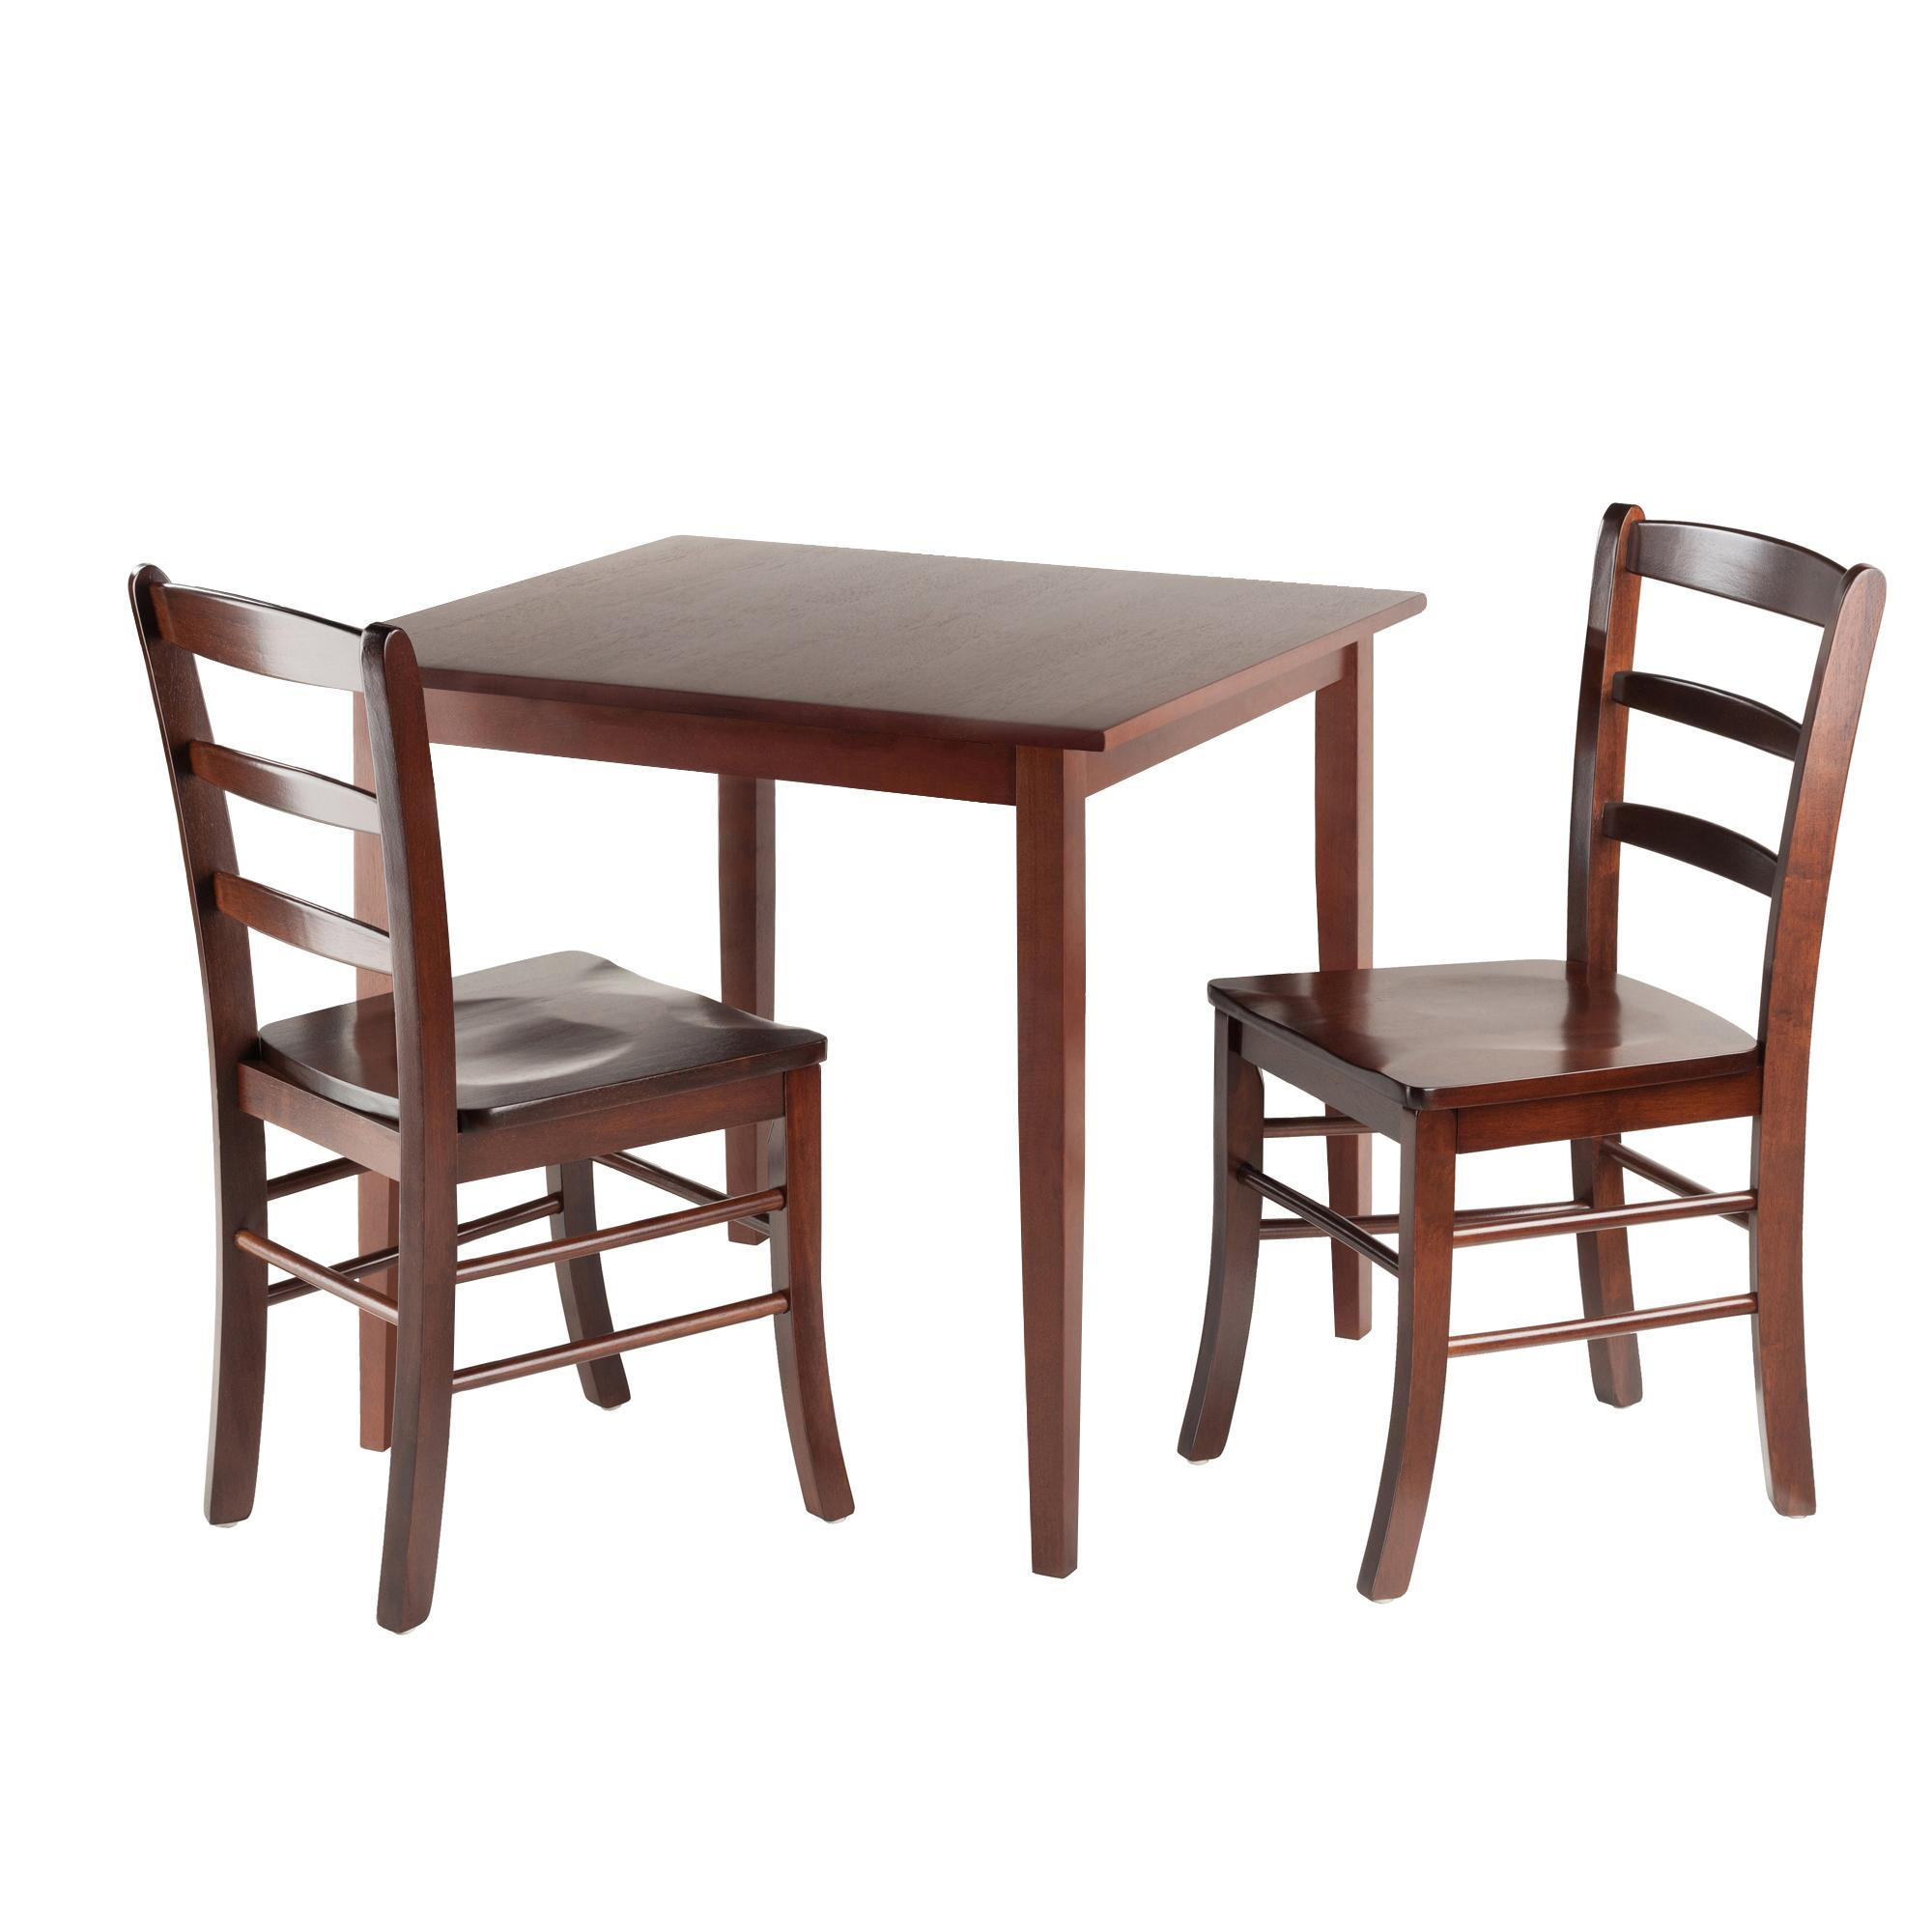 View larger  sc 1 st  Amazon.com & Amazon.com - Winsome Groveland Square Dining Table with 2 Chairs 3 ...